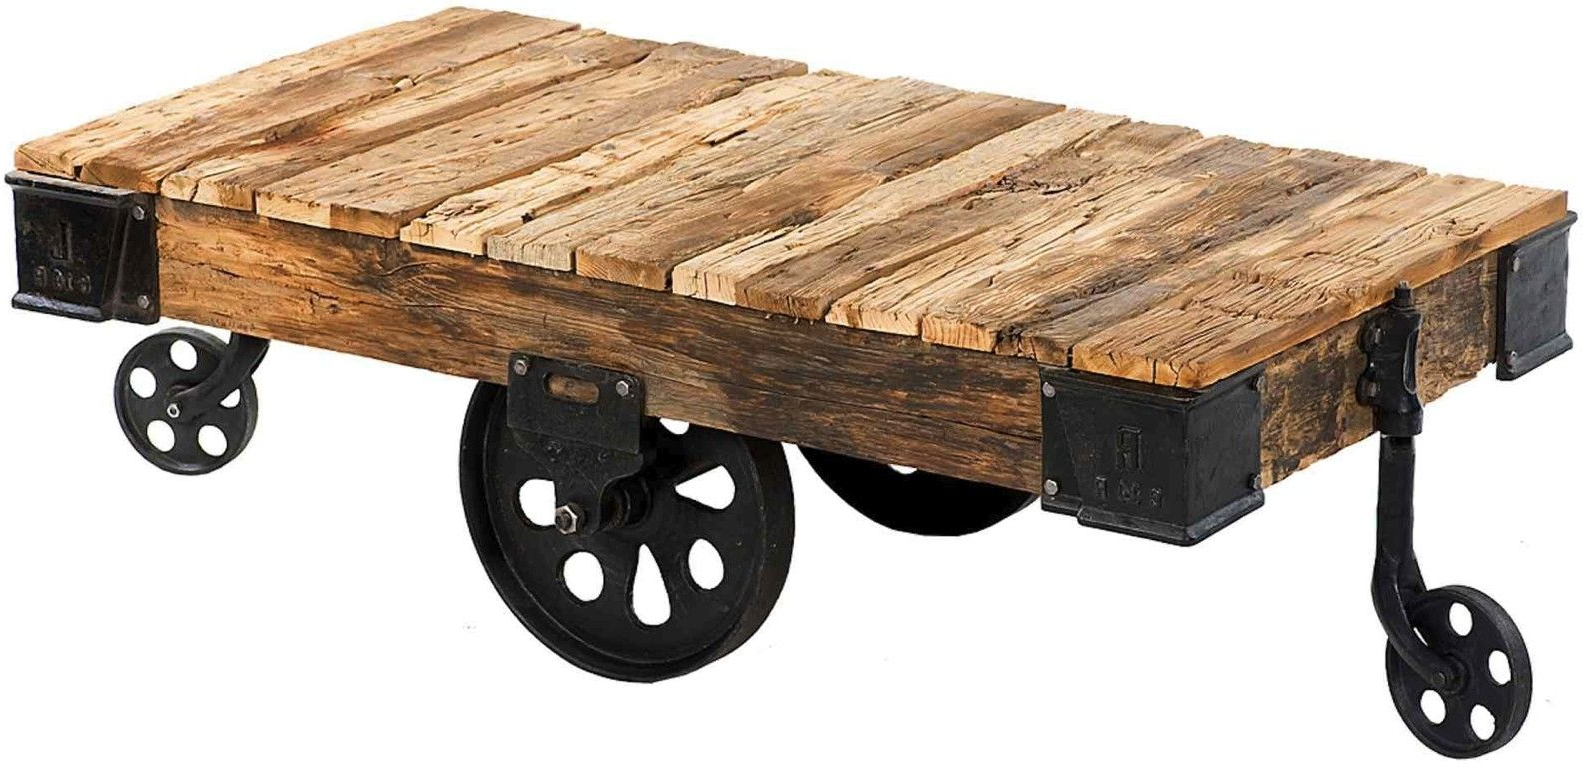 Custom Reproduction Industrial Factory Cart Coffee Tablemortise Throughout Most Recent Natural Wheel Coffee Tables (View 6 of 20)